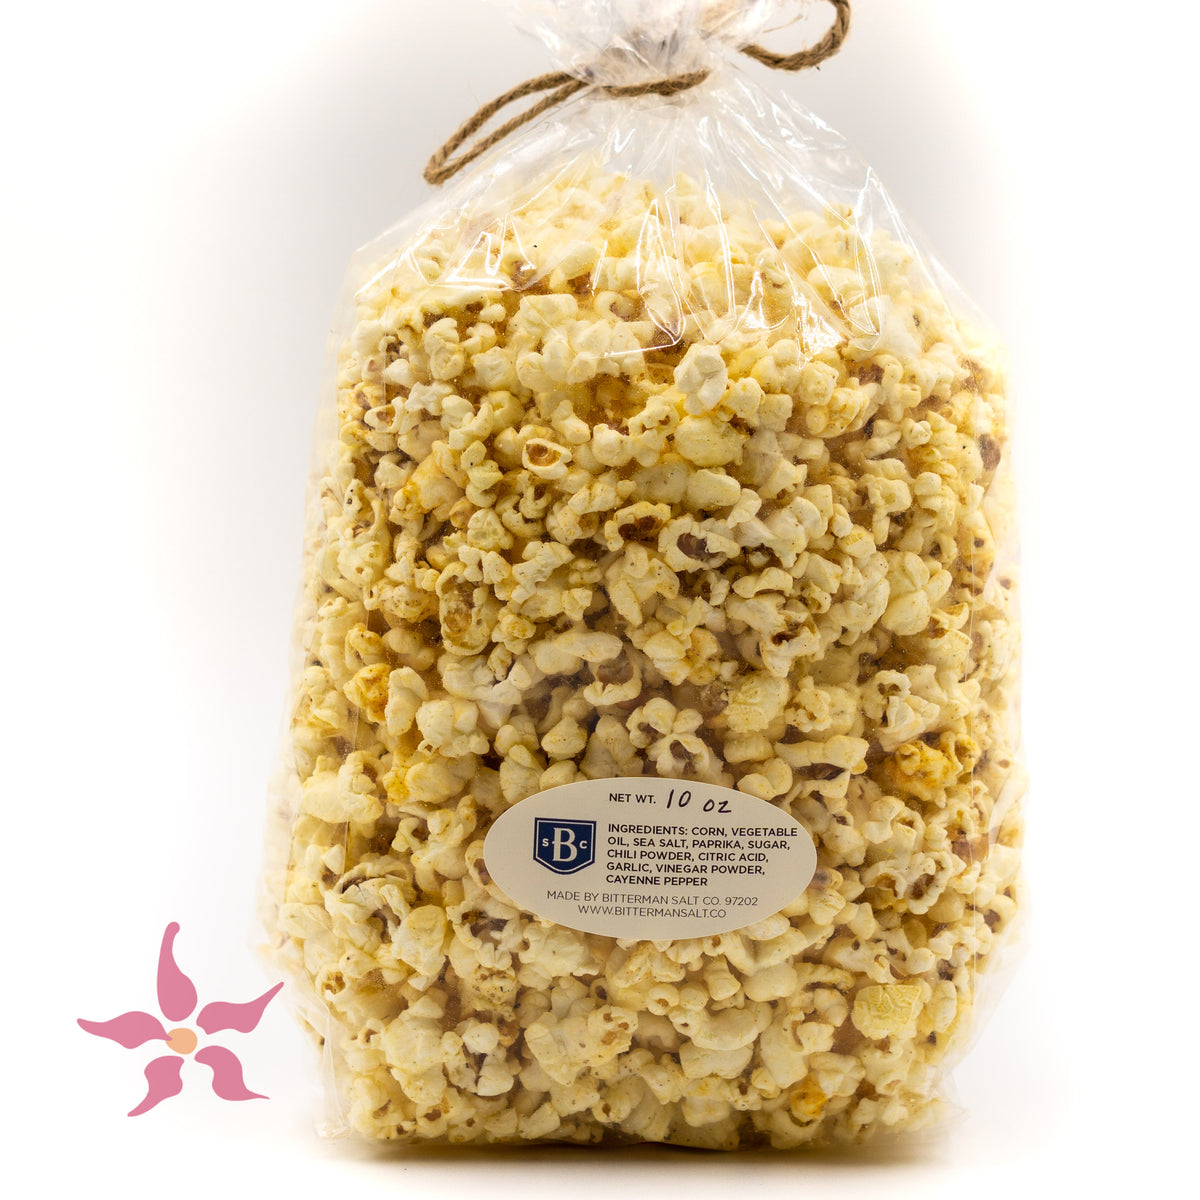 Black Truffle Salted Popcorn - Pre-order now!